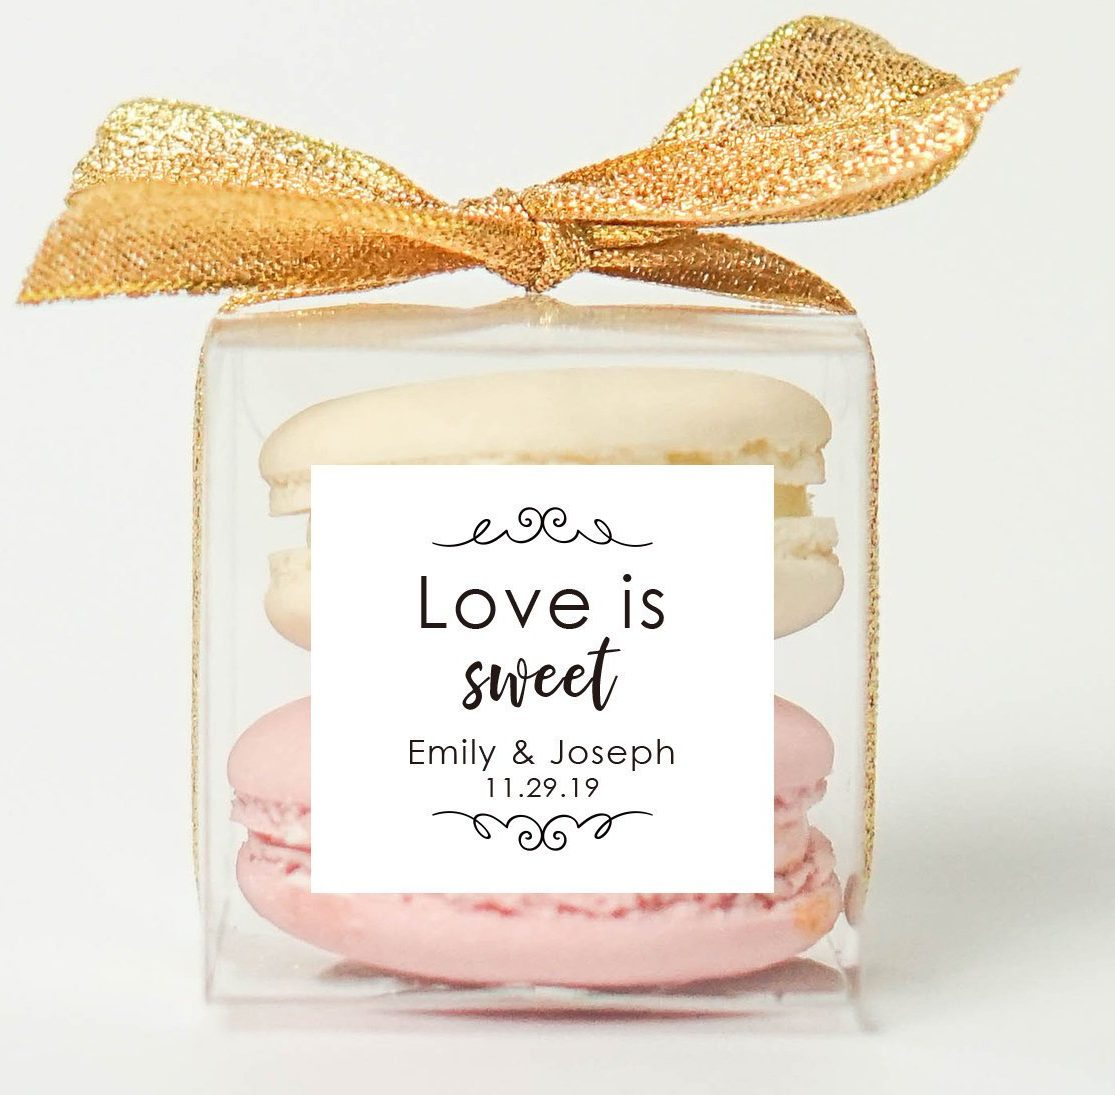 The Best Wedding Favors To Give Your Guests